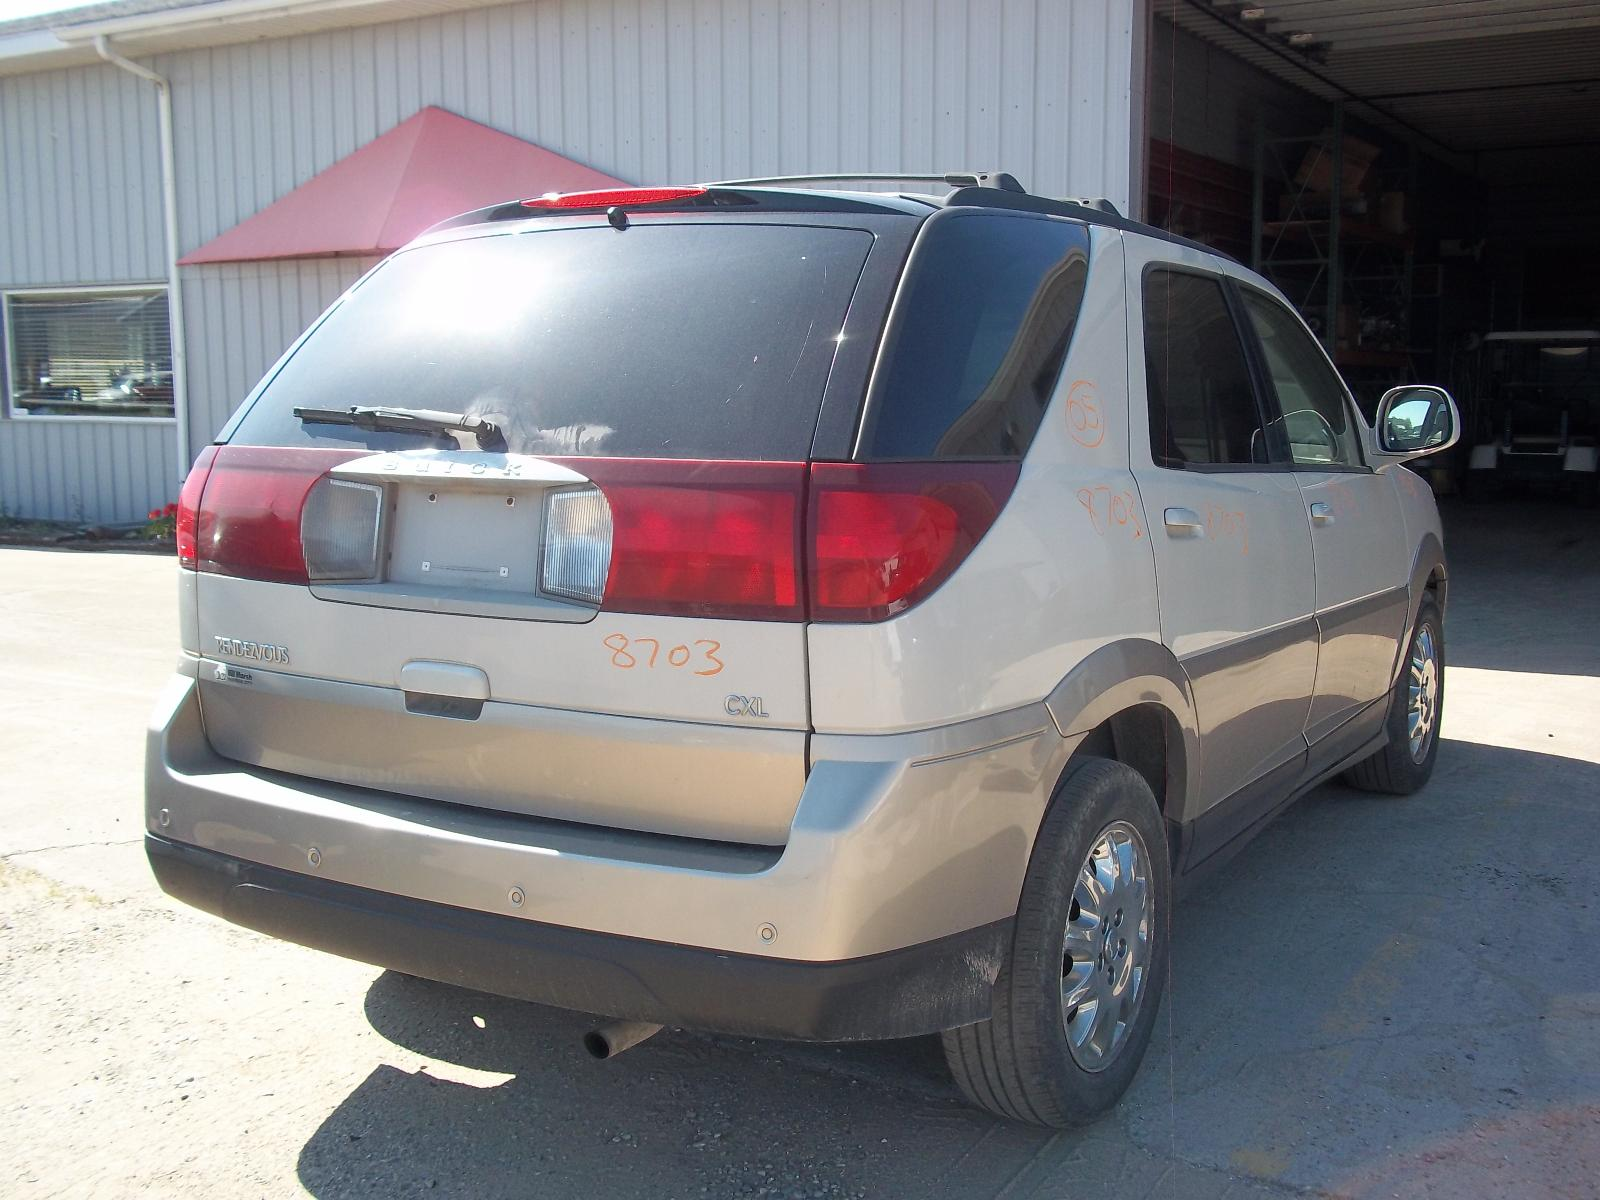 Buick Rendezvous Seat Rear Used Auto Parts. 64b4c5de53024d0e8a3da8052cd25656. Buick. 2004 Buick Rendezvous Rear Light Wiring At Scoala.co